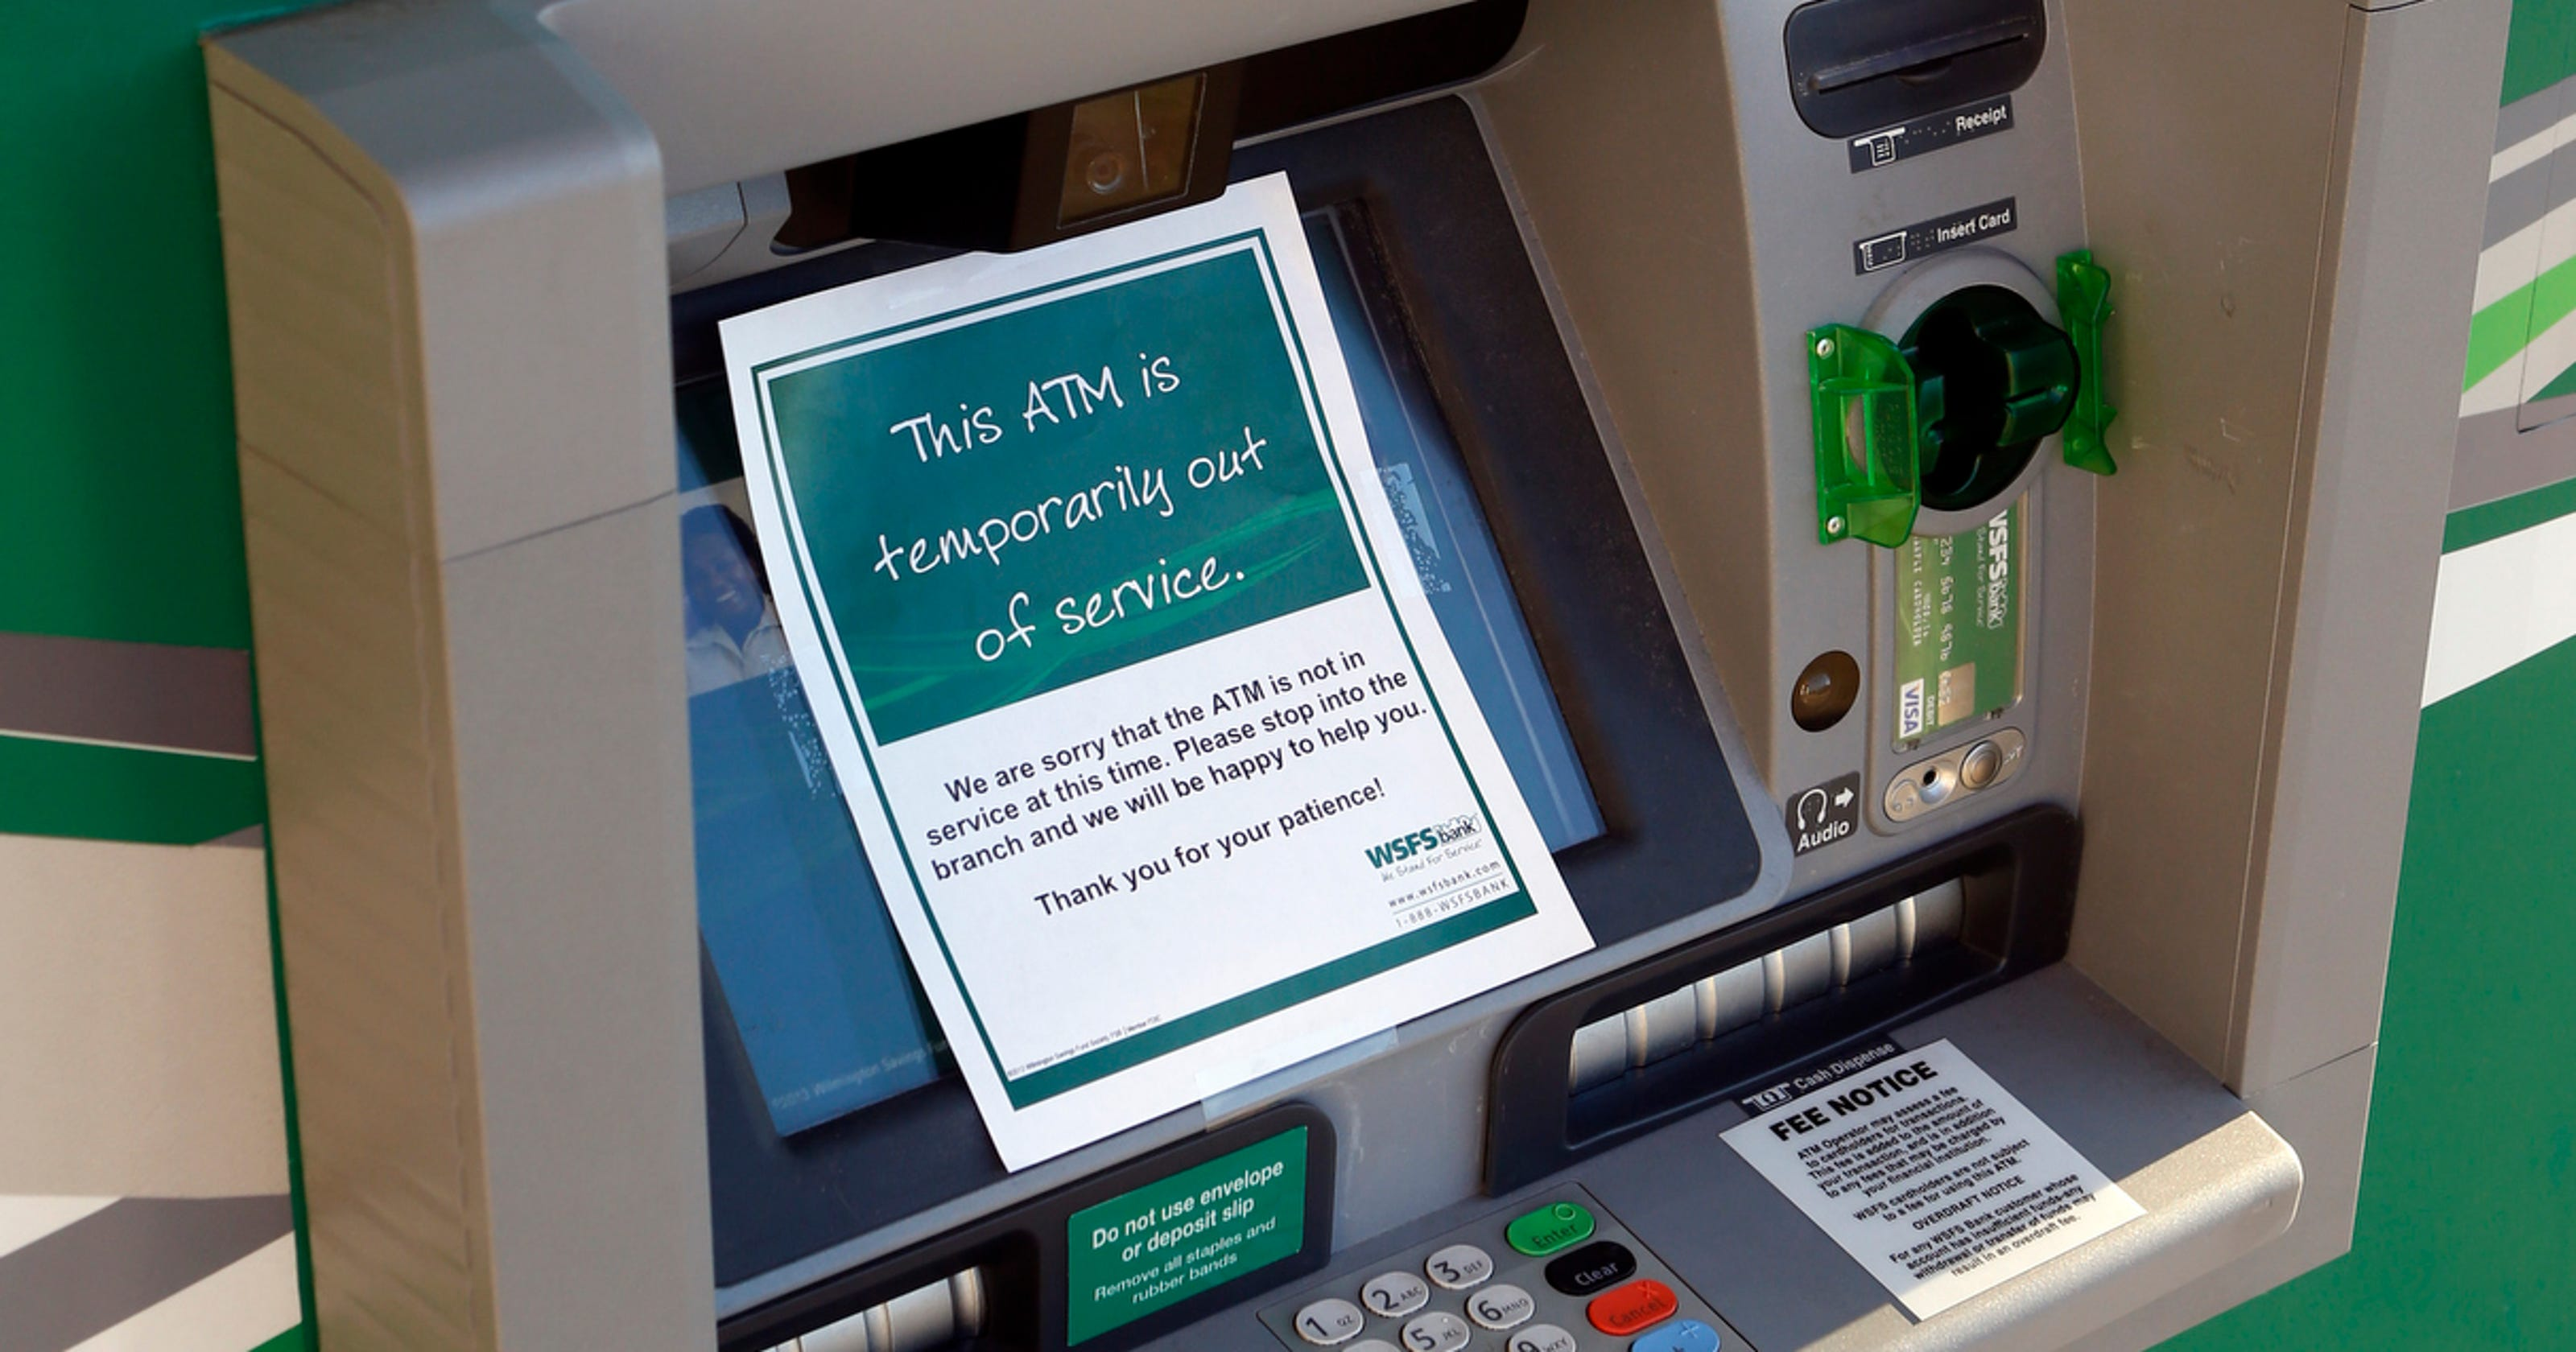 ATM skimmer used at WSFS in Prices Corner